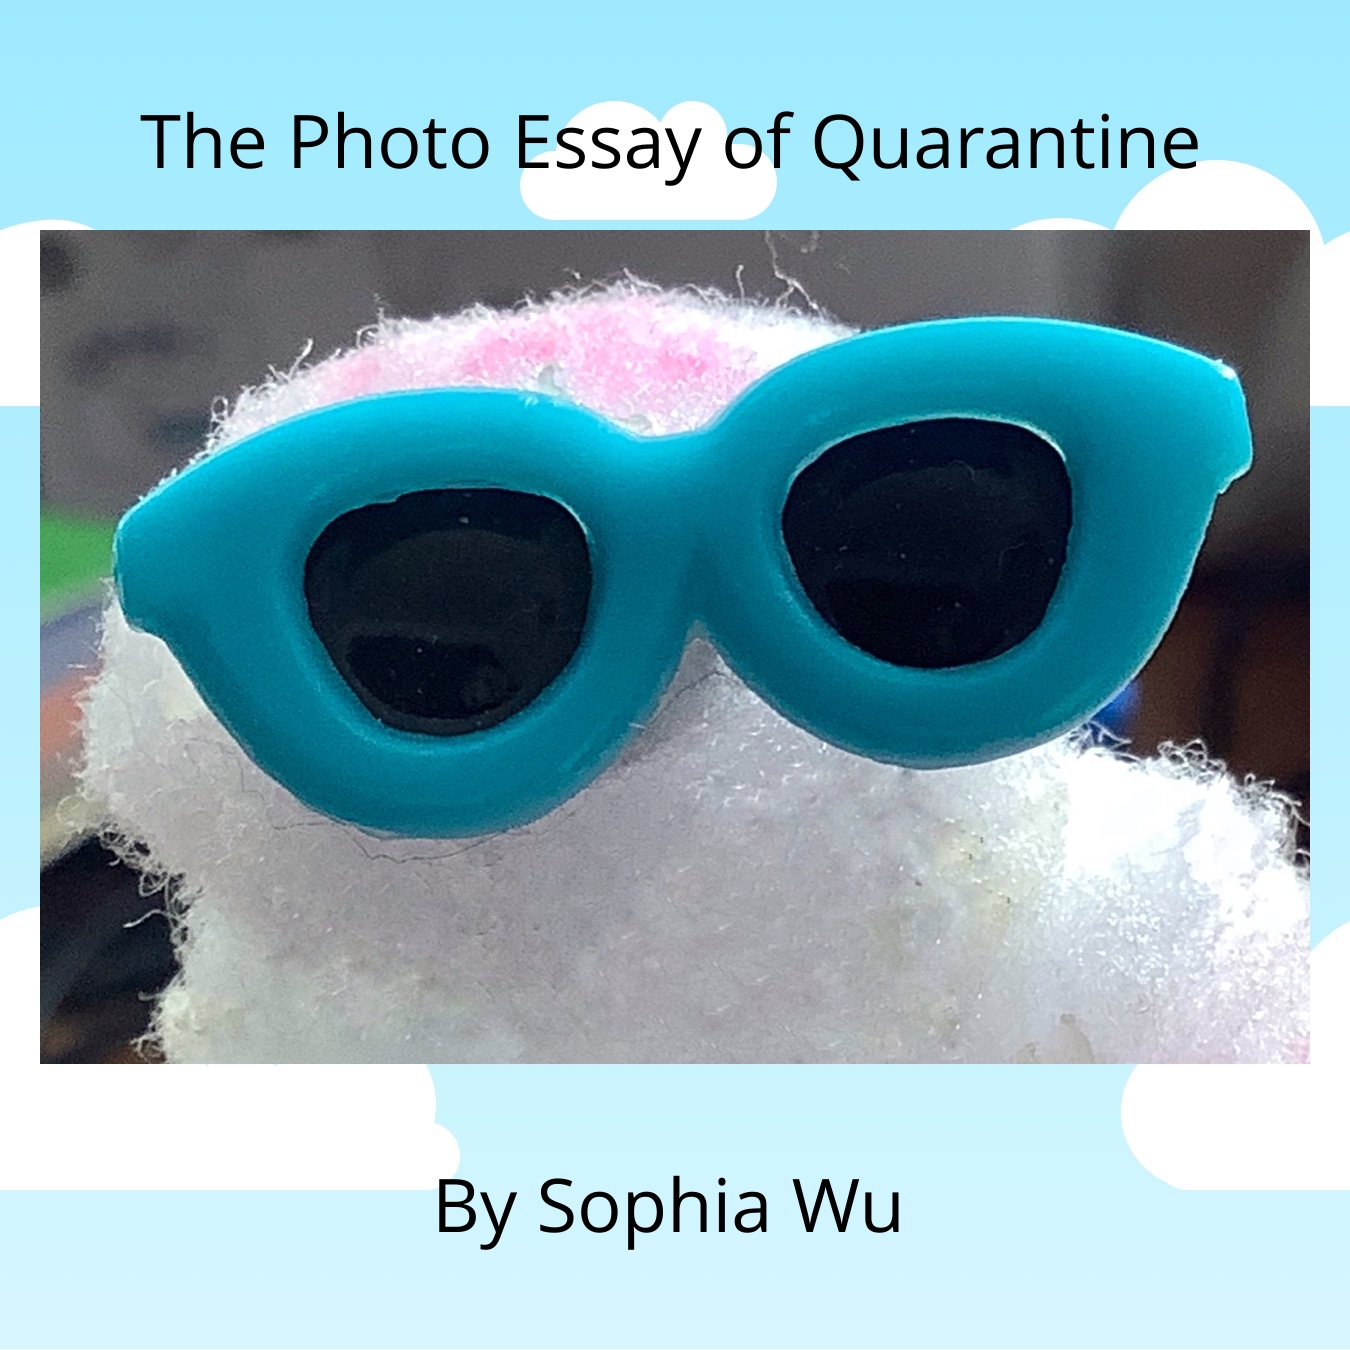 The Photo Essay of Quarantine